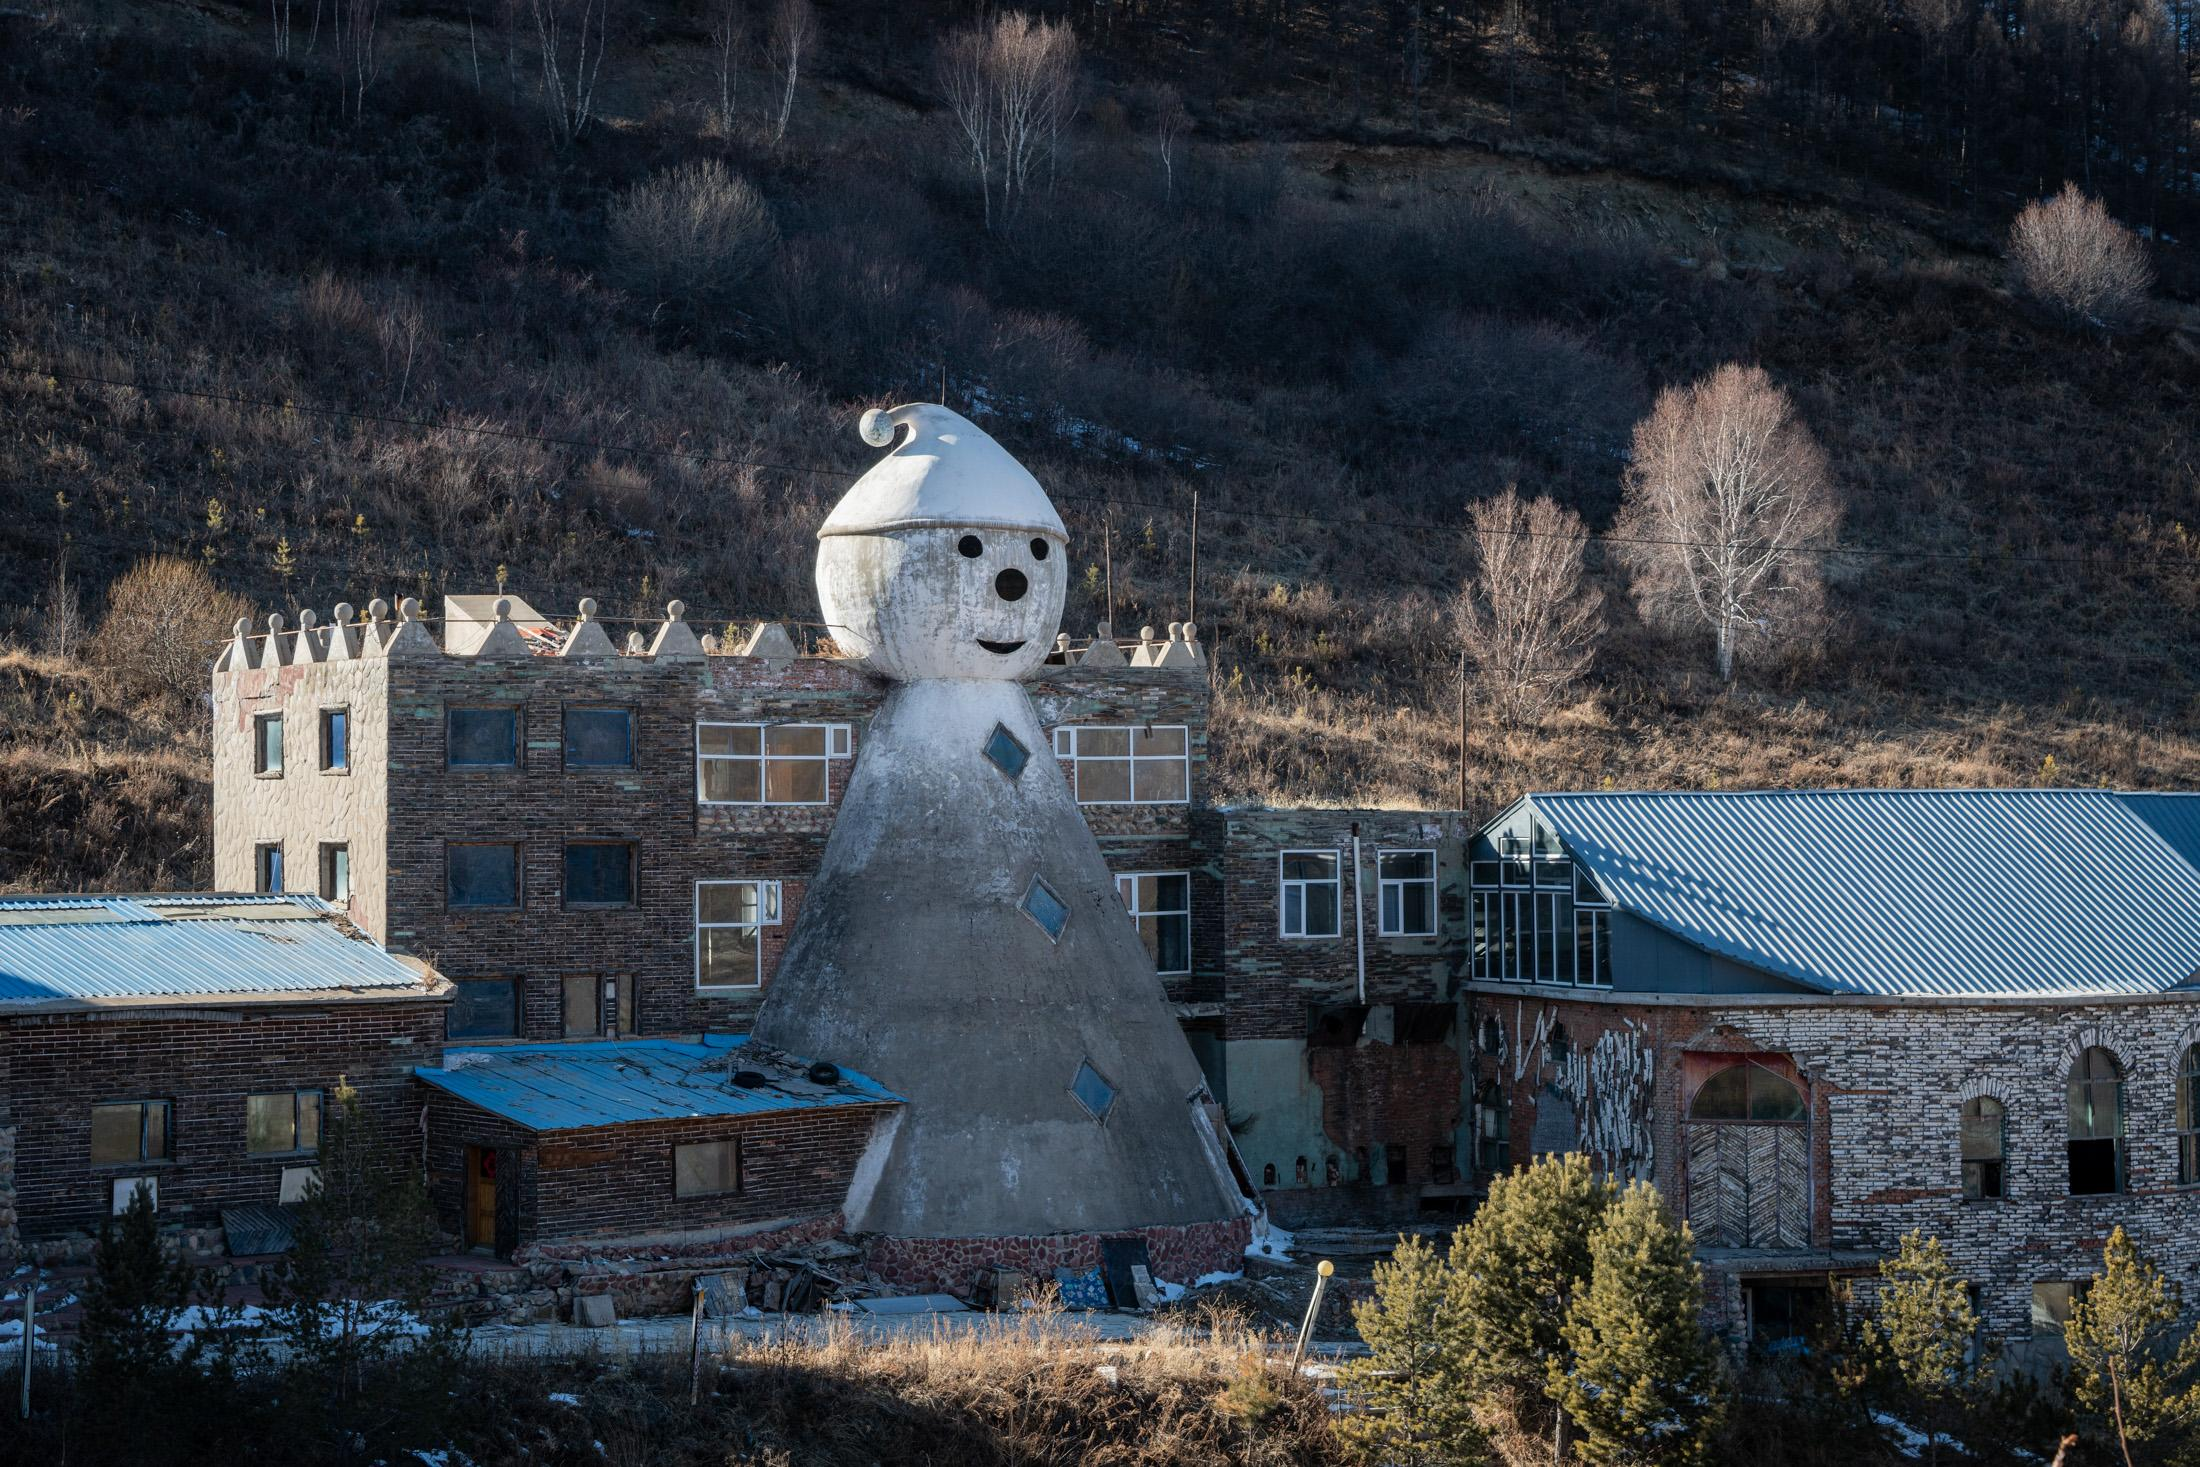 Saibei Ski Resort, built in the 1990s and now abandoned in Chongli, is the first ski resort built in northern China.